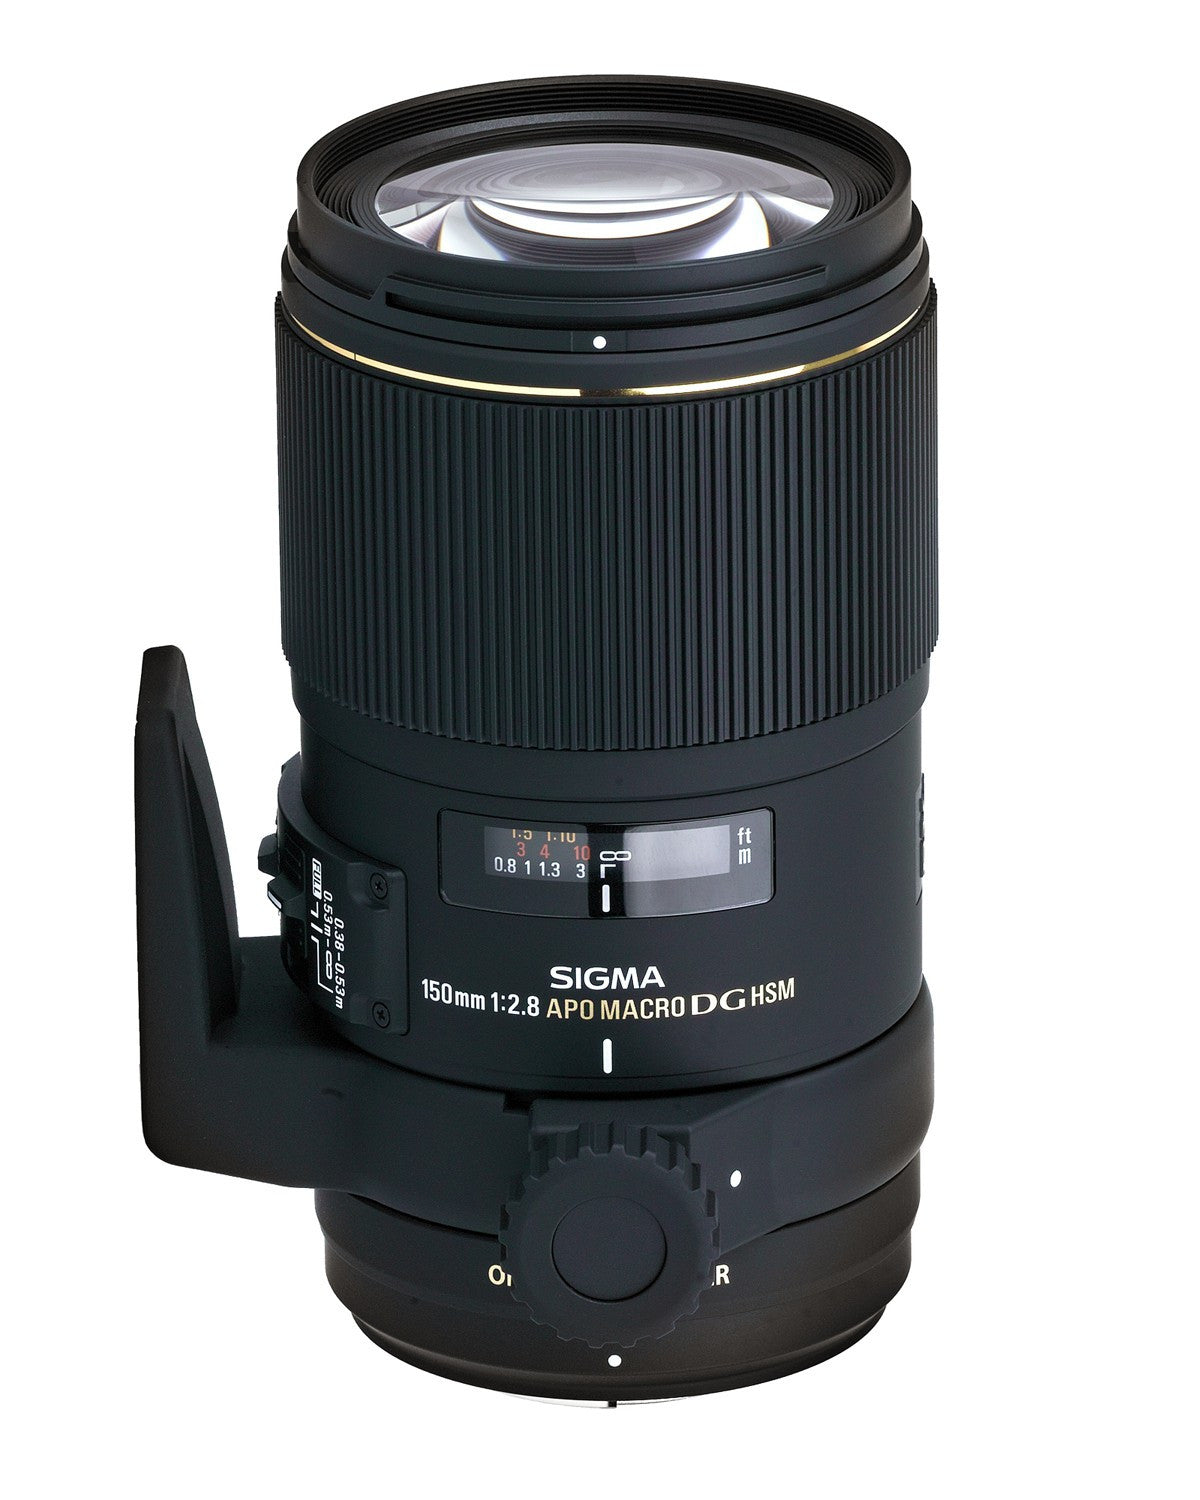 Sigma 150mm F2.8 EX APO DG HSM OS Macro (Sigma) - Photo-Video - Sigma - Helix Camera